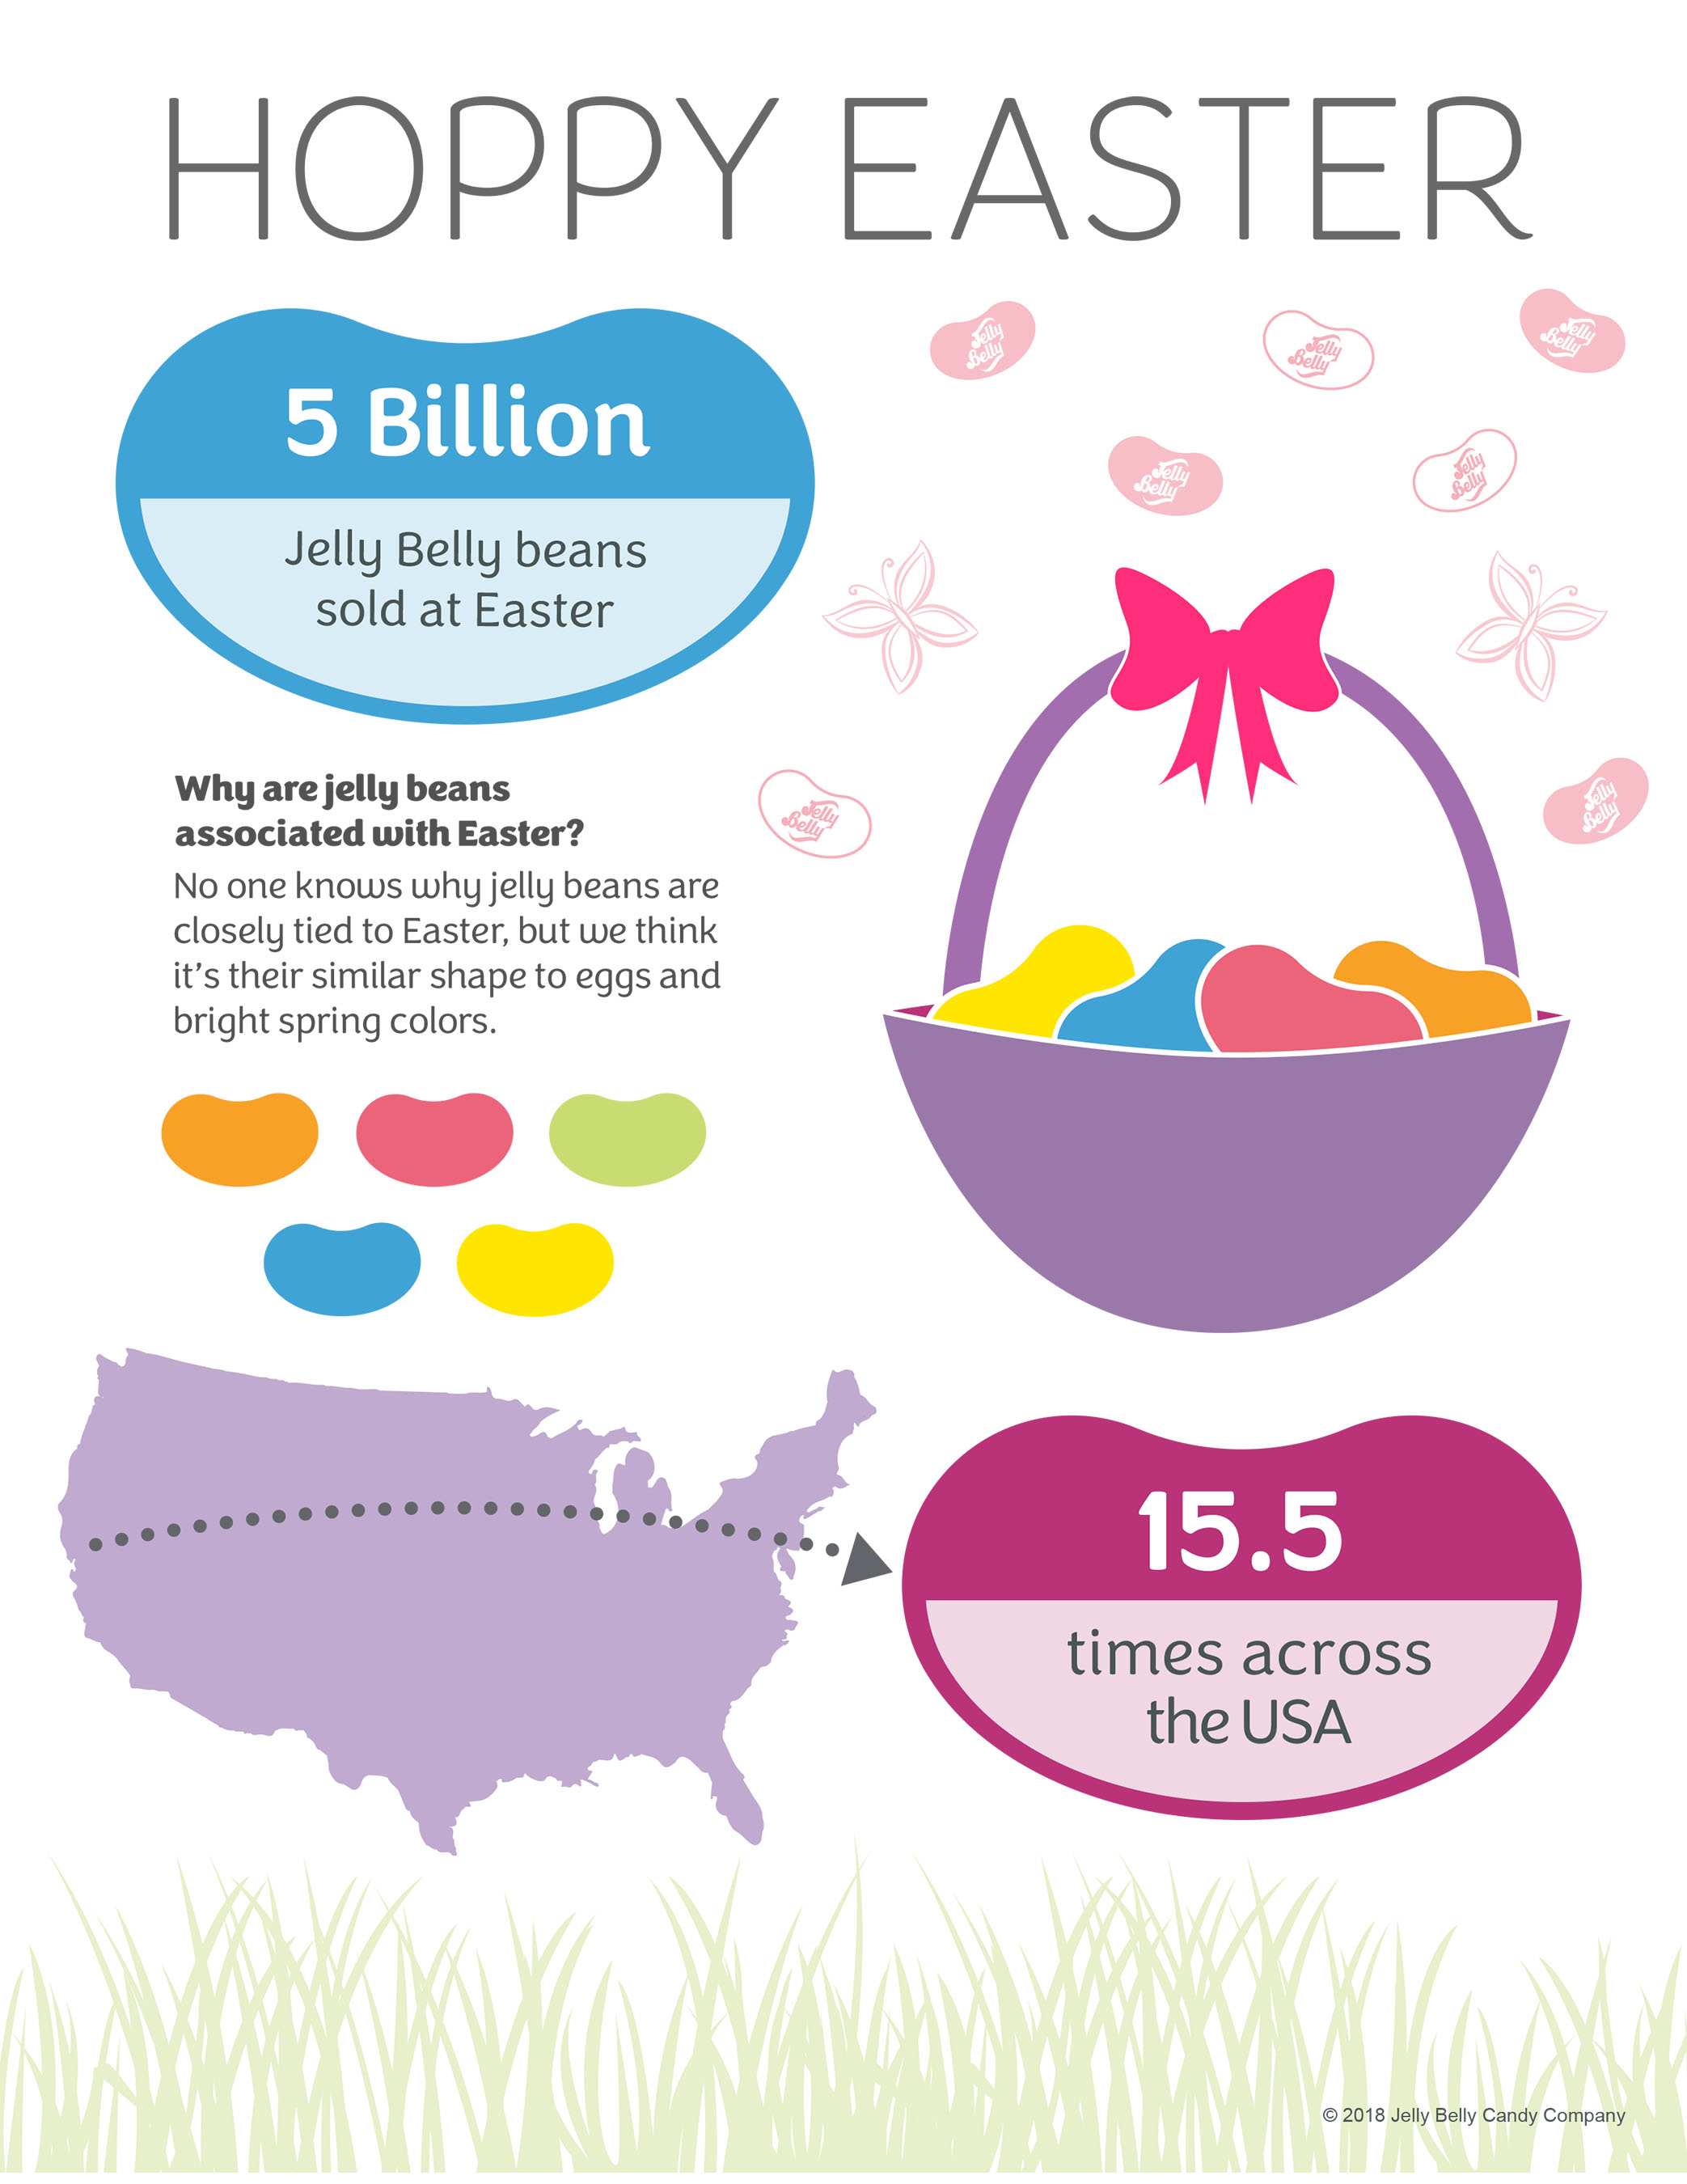 Infographic from Jelly Belly Candy Company offers insight into Easter candy and jelly beans